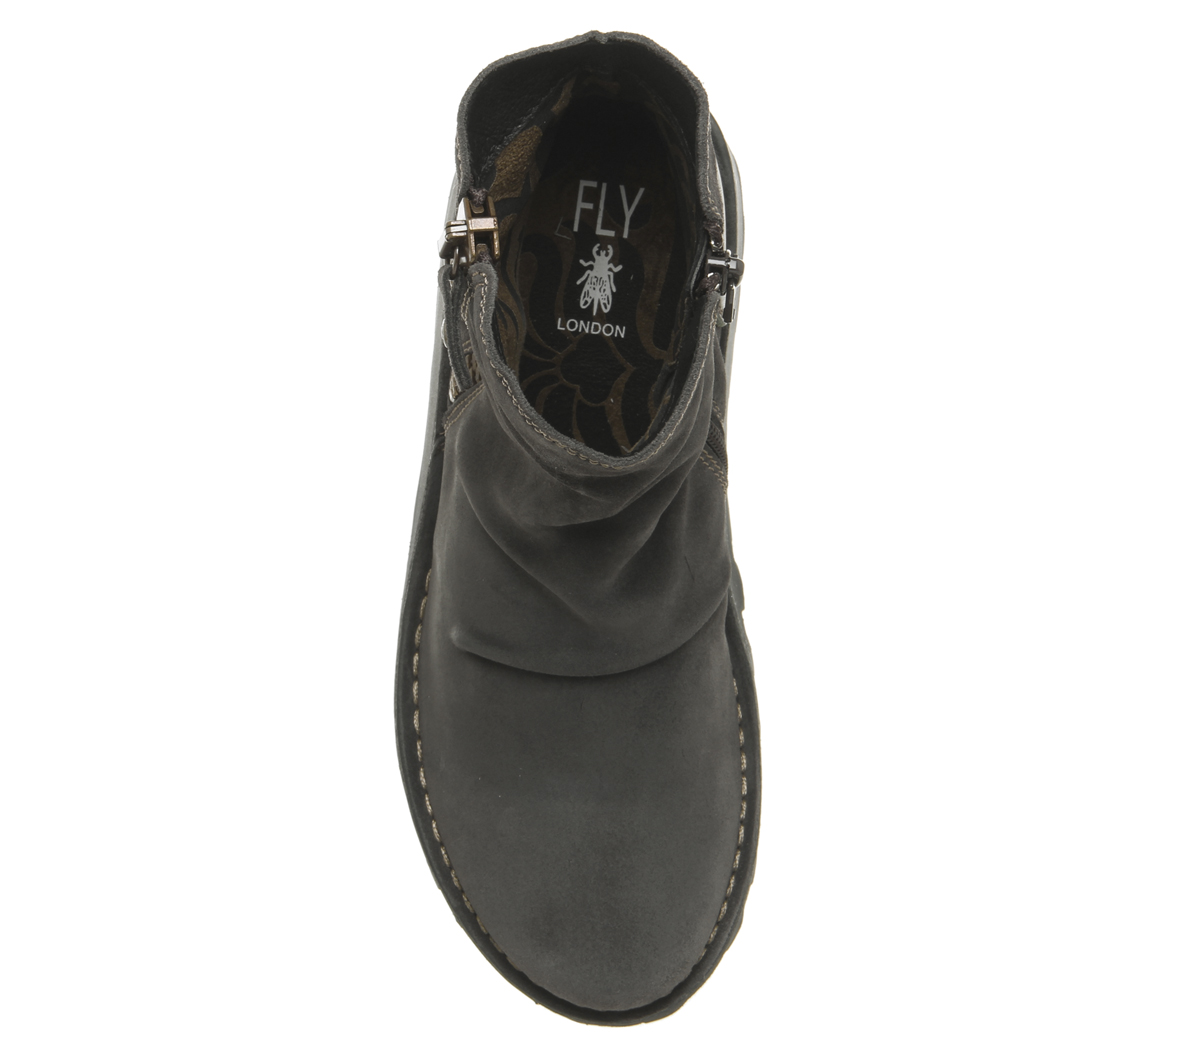 Womens-Fly-London-Mon-Zip-Boots-Diesel-Suede-Boots